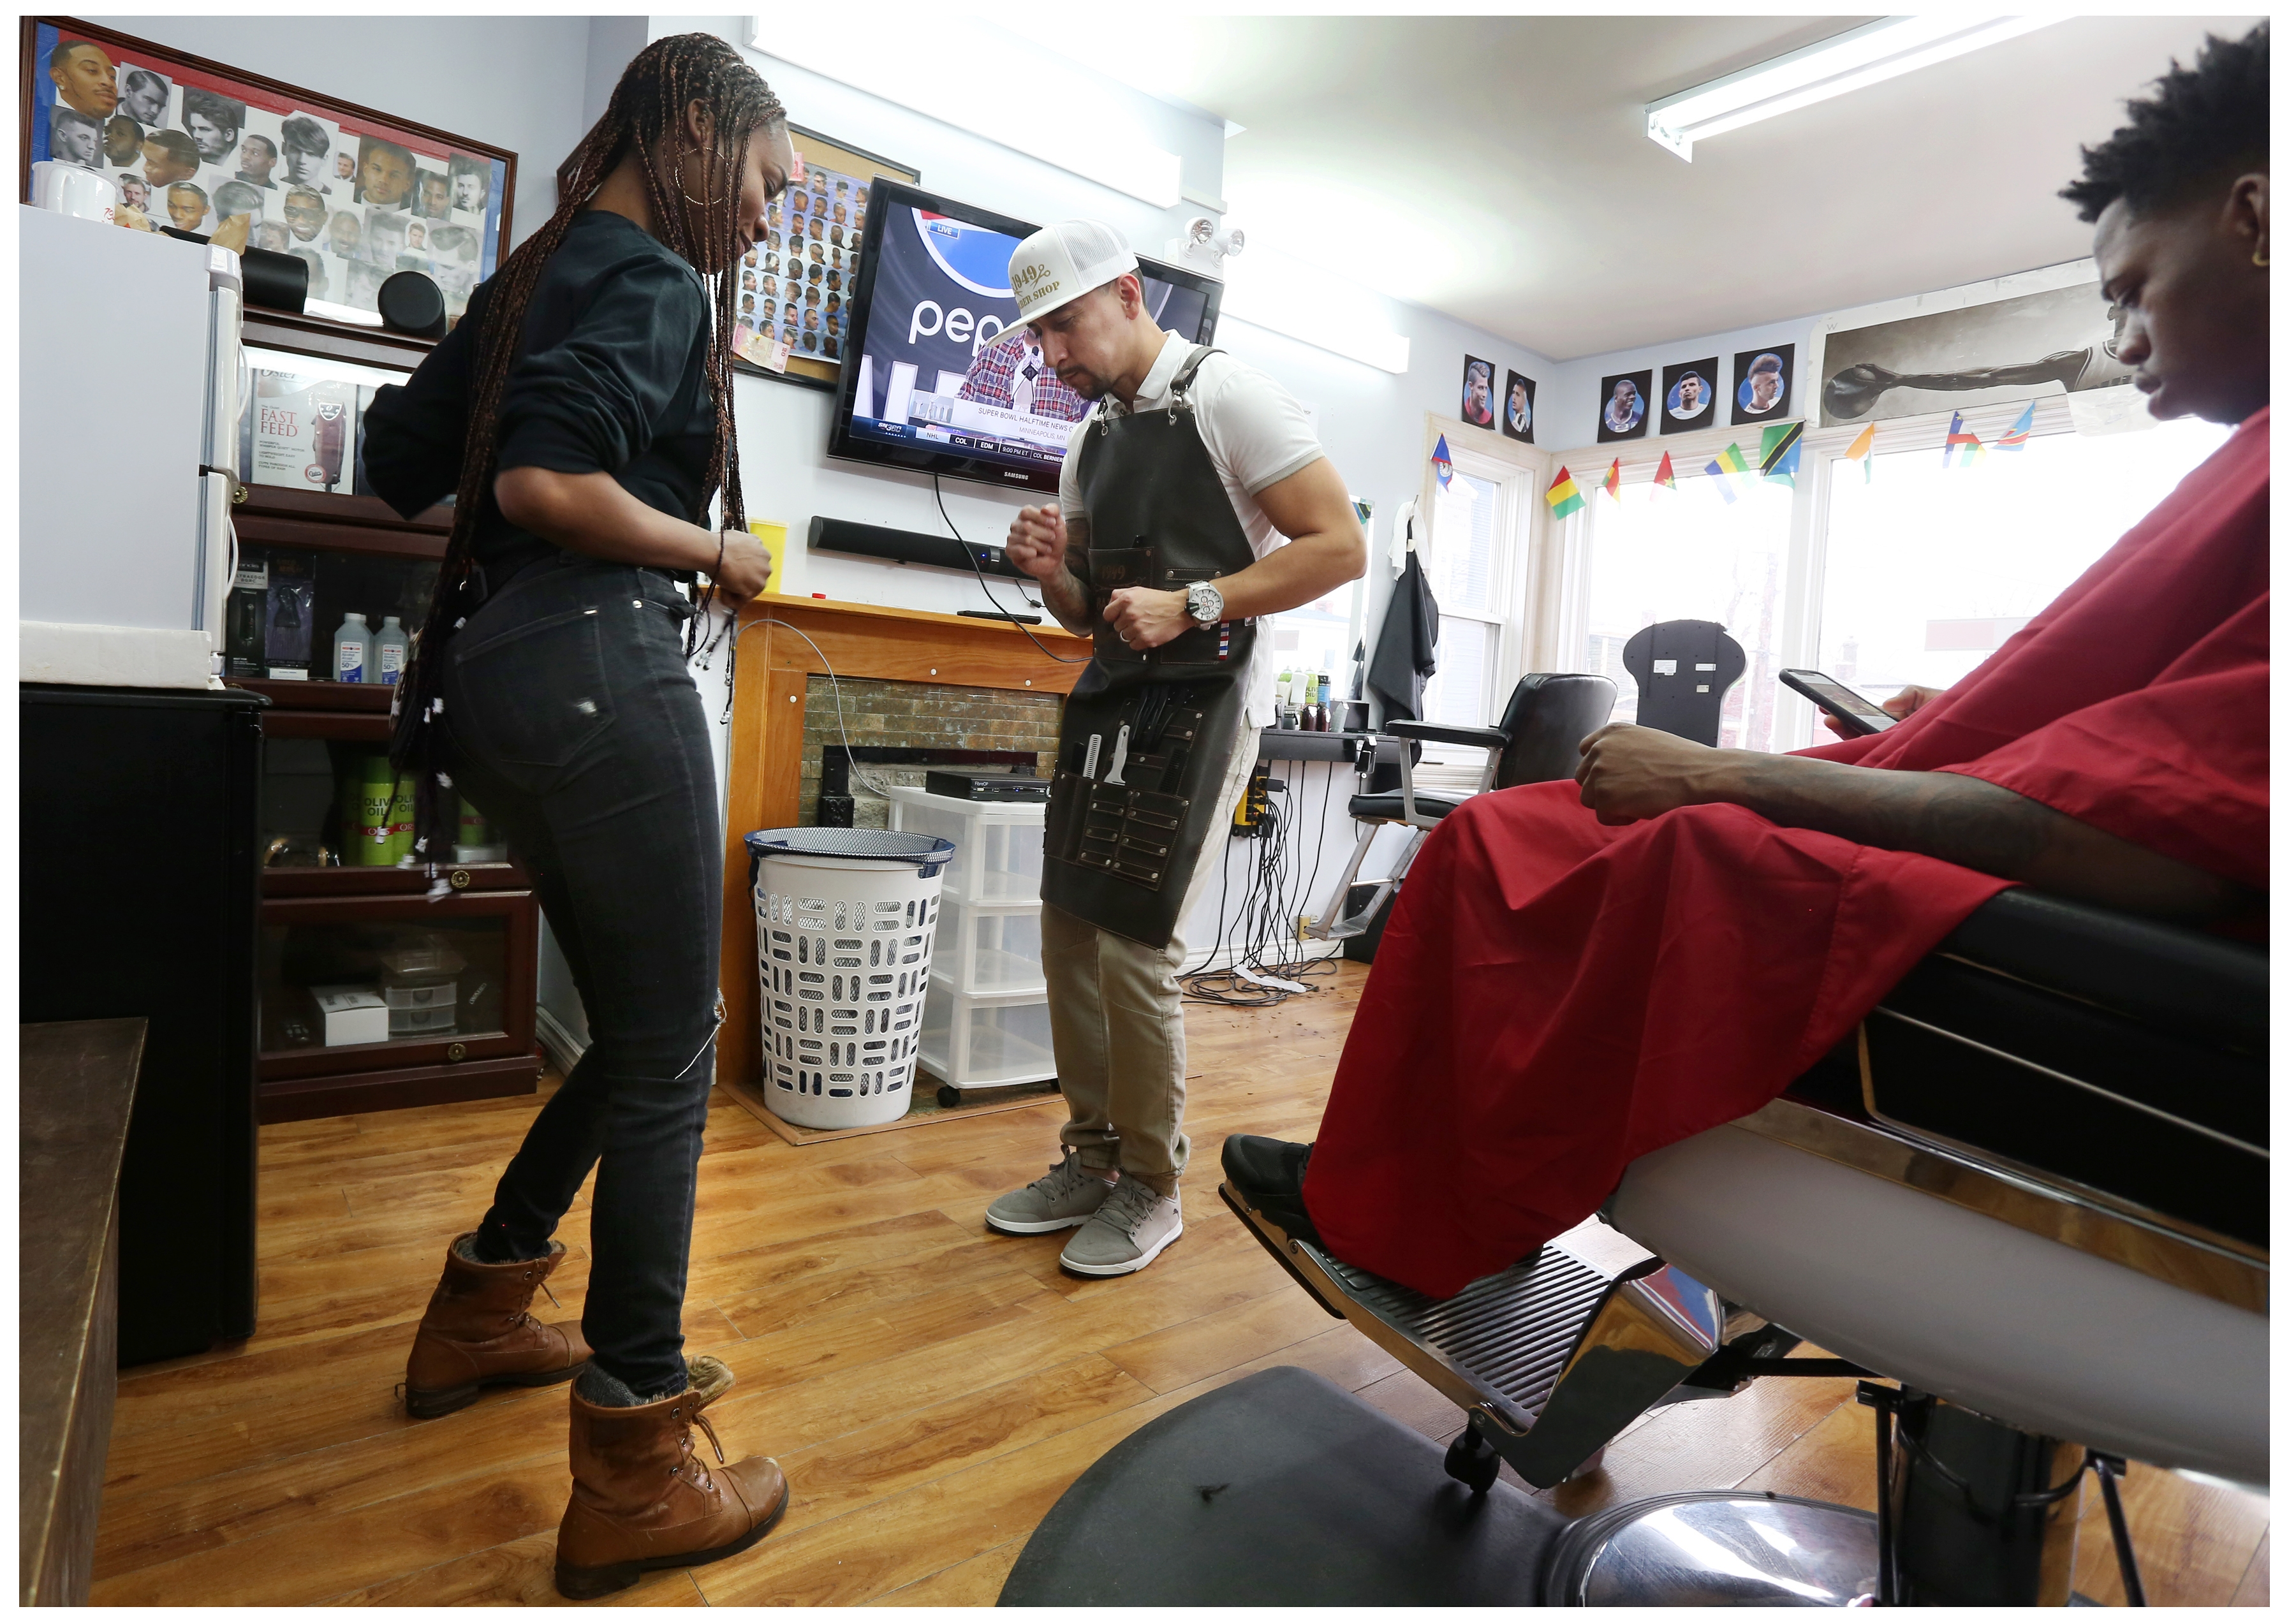 A little music lightens the mood at the barbershop. (Paul Daly)